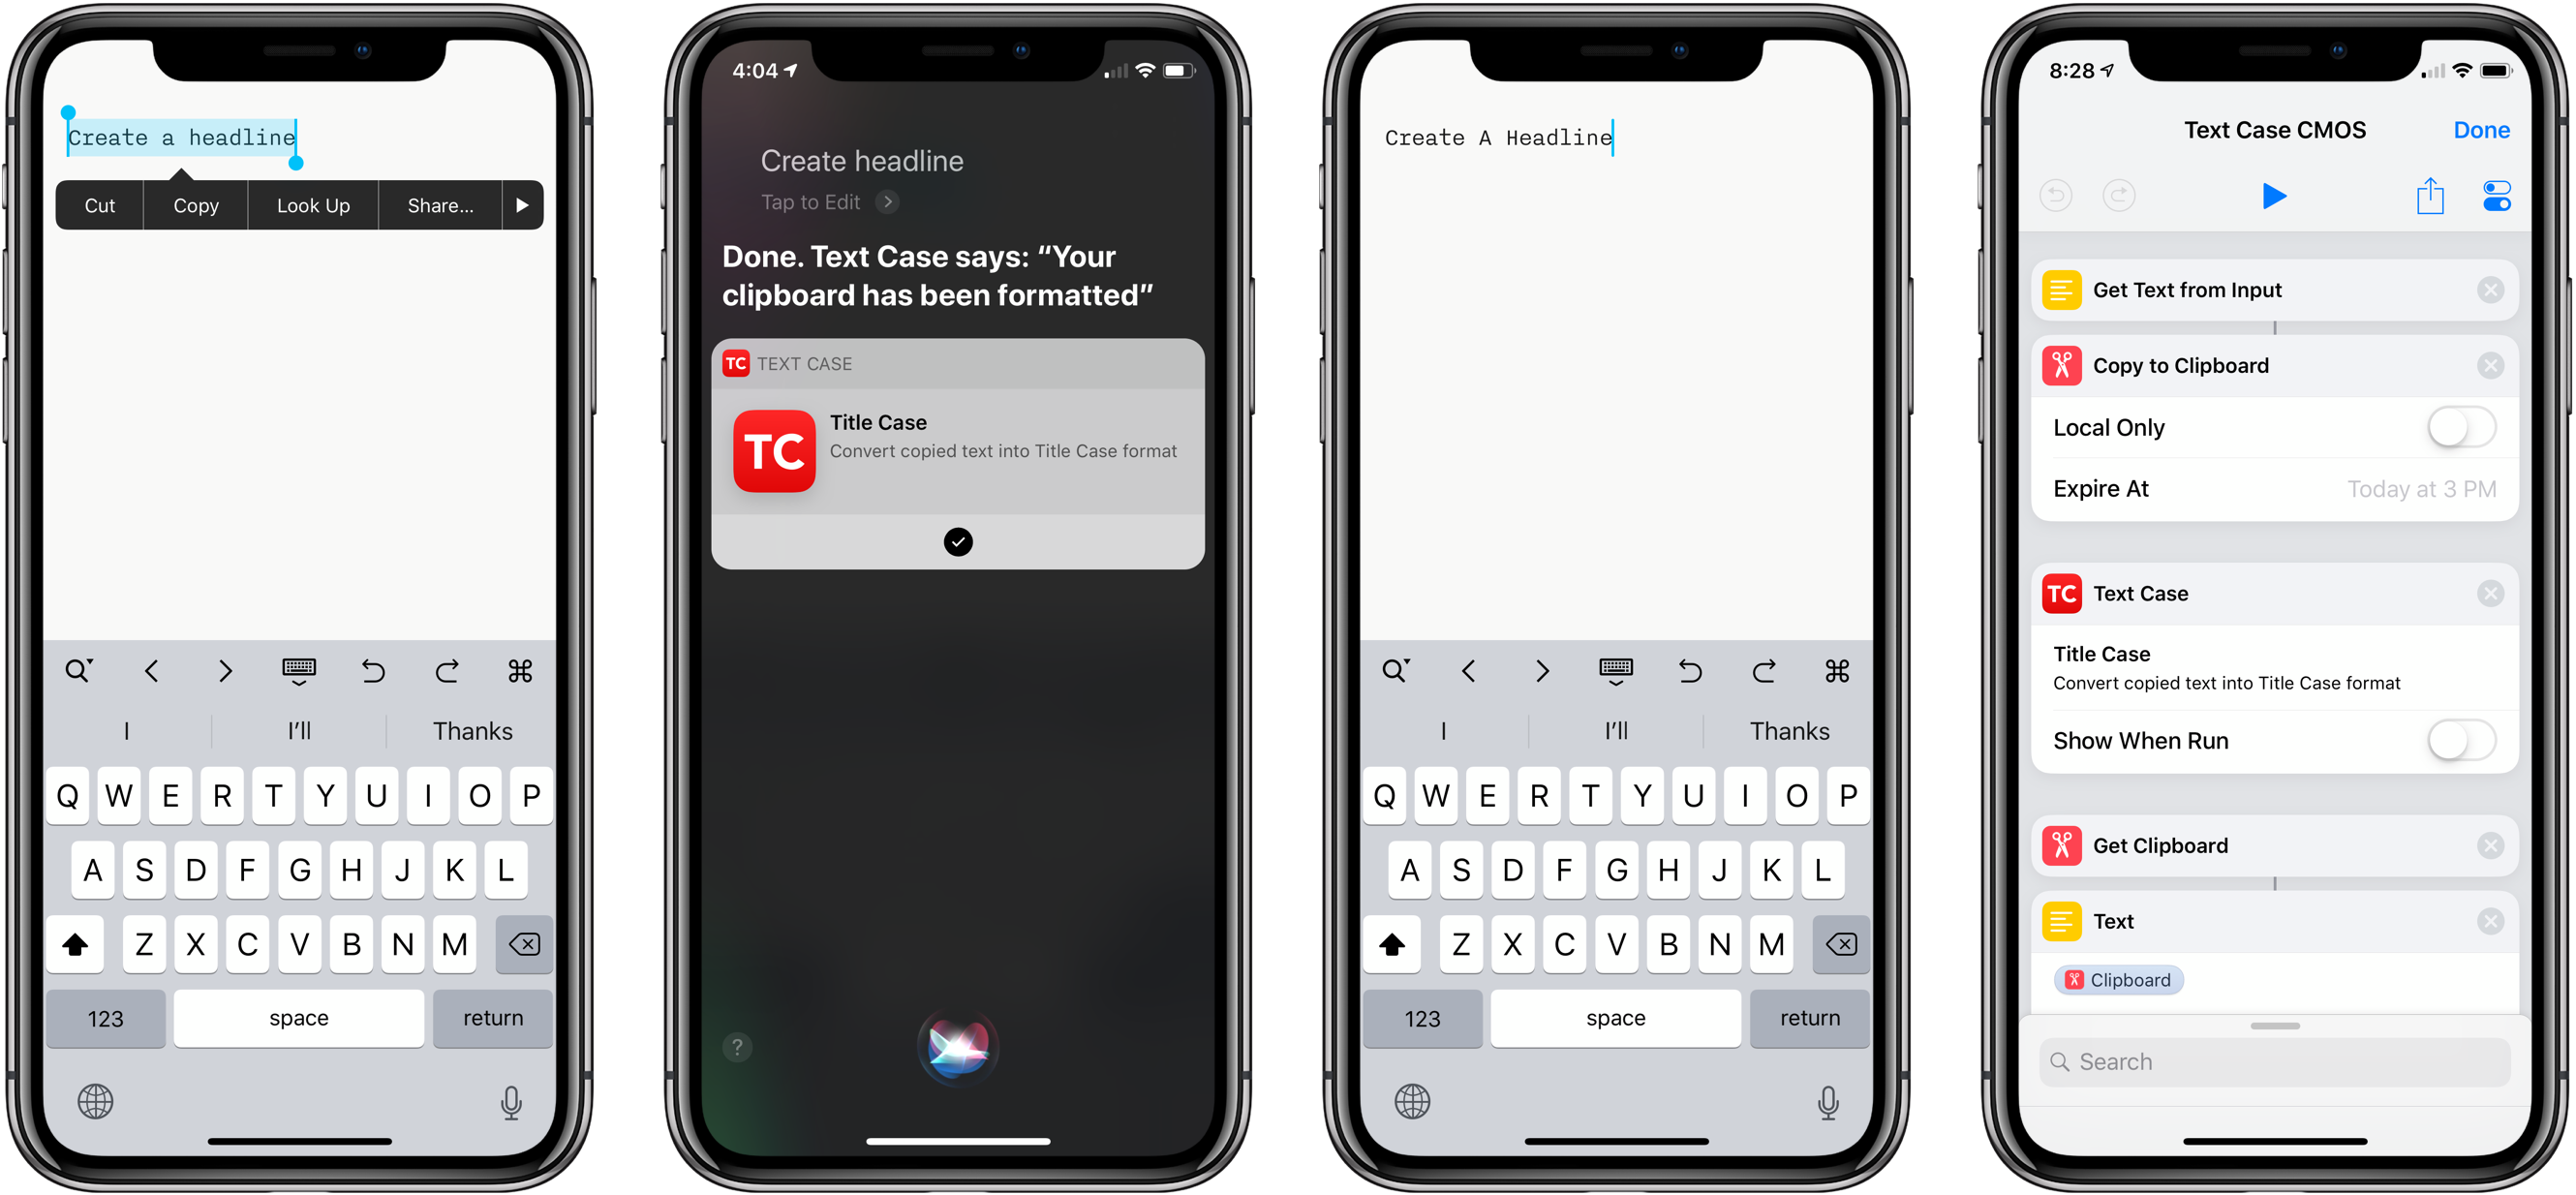 Using Text Case with Siri and embedding it in a custom shortcut.